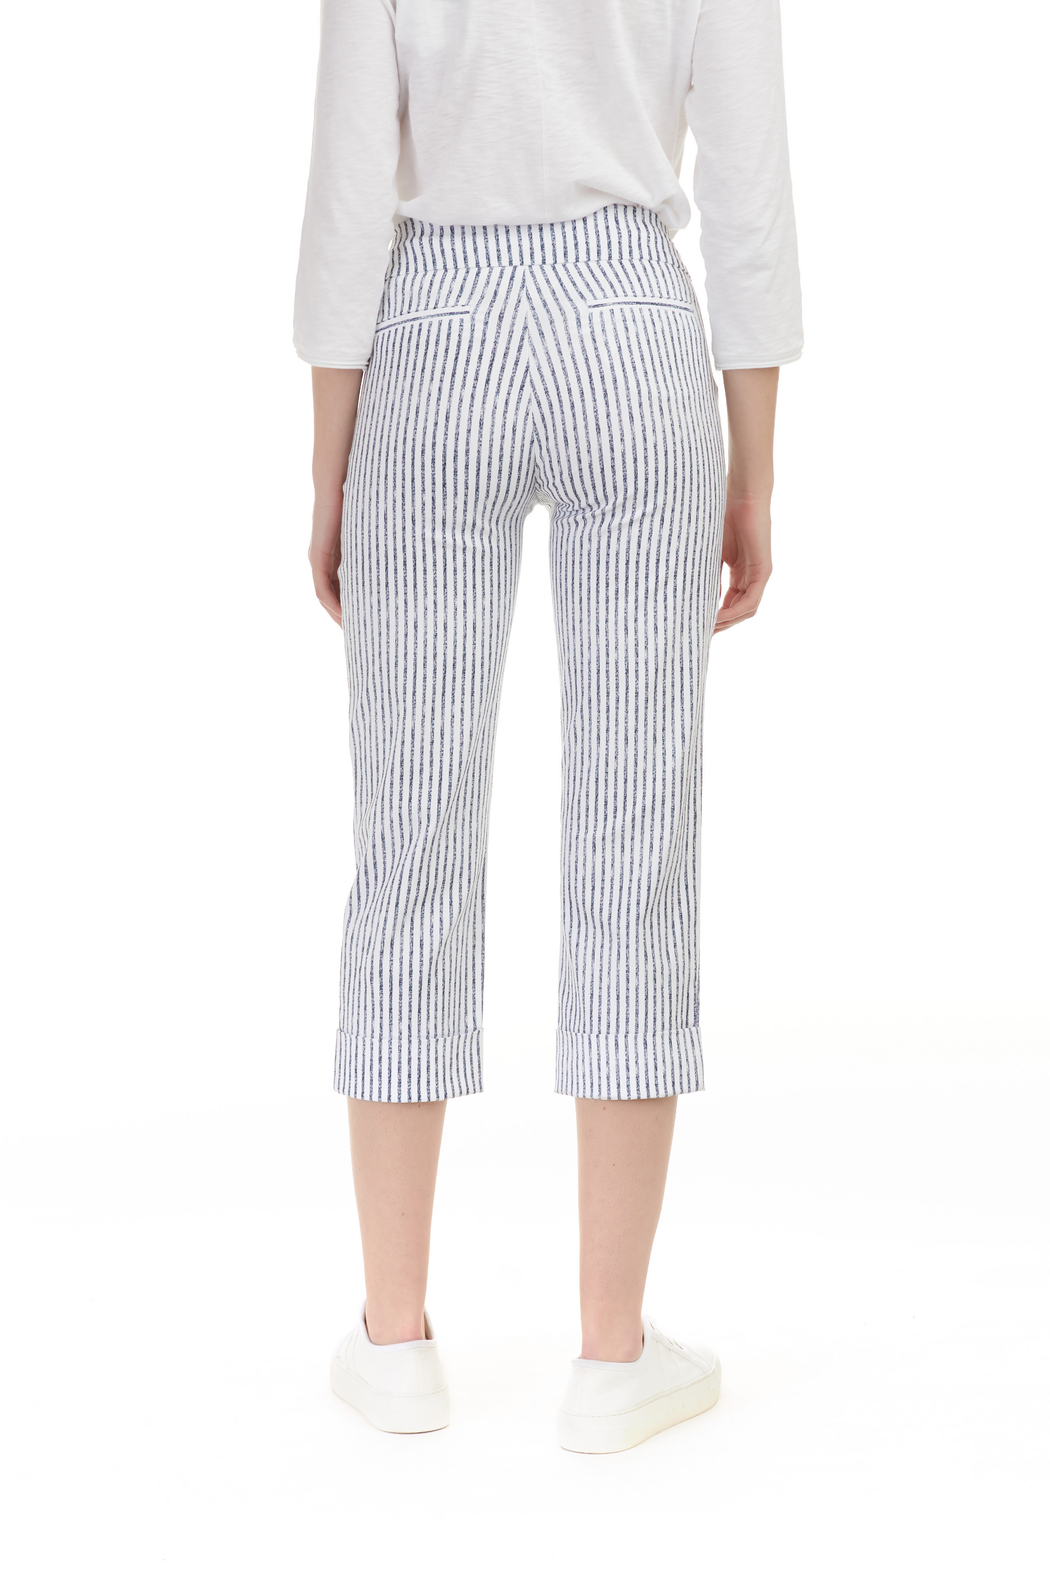 Charlie B Stripe Stretch Pant - Front Full Image